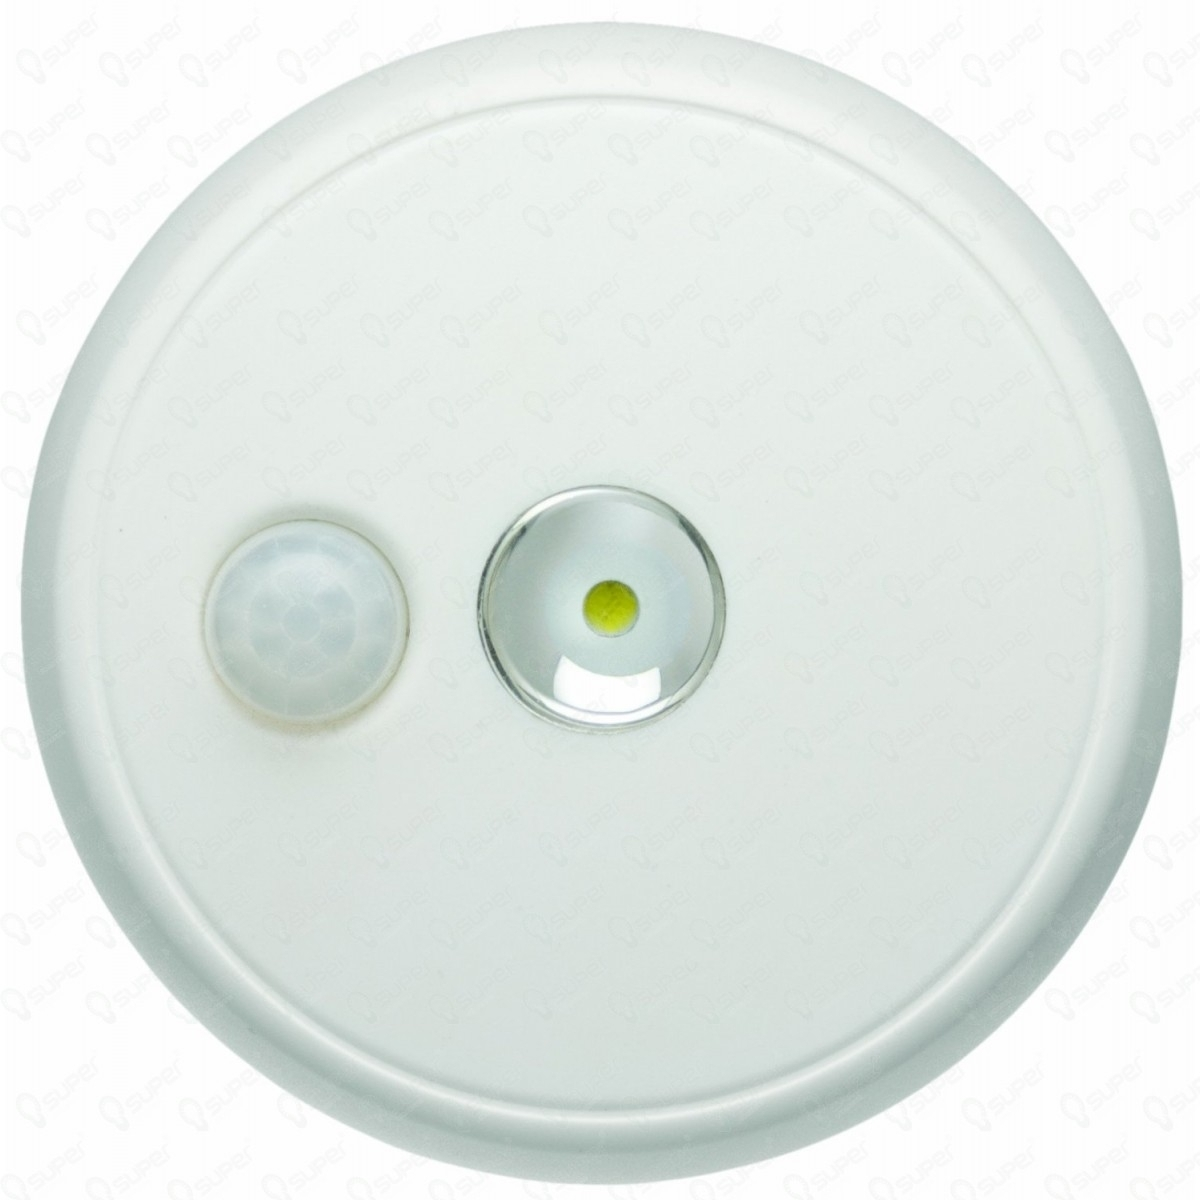 Outdoor Ceiling Lights With Motion Sensors • Outdoor Lighting Inside Outdoor Motion Detector Ceiling Lights (View 13 of 15)